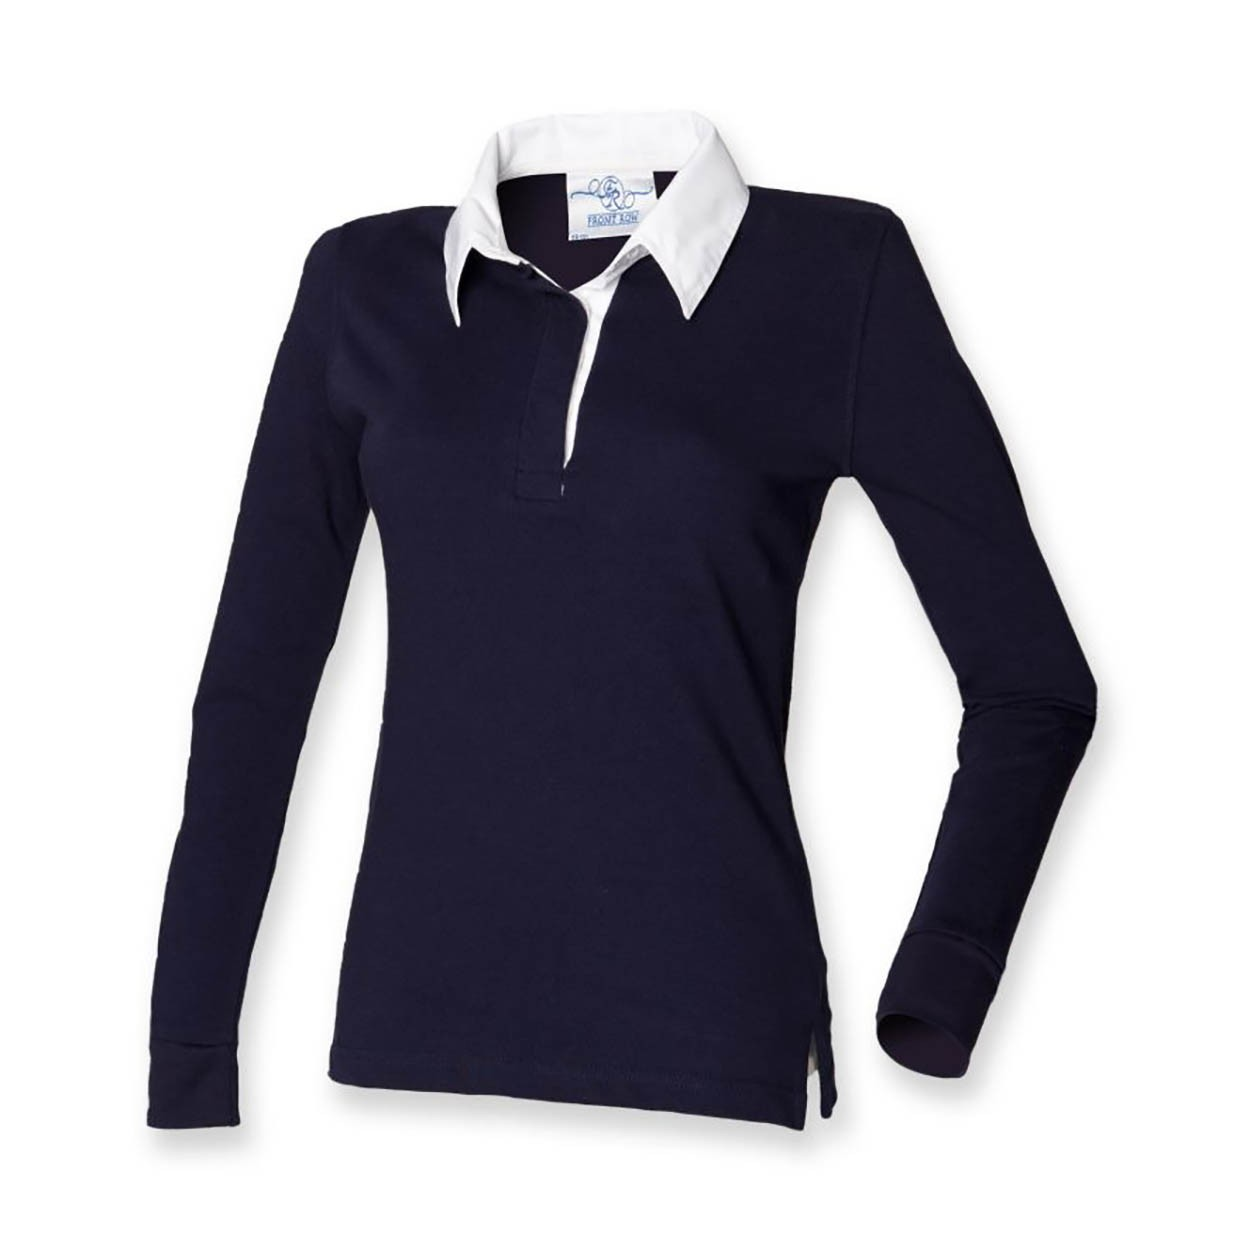 8cccb9188d9 Front Row FR101 Ladies Classic Rugby Shirt - Women's Rugby Shirts ...